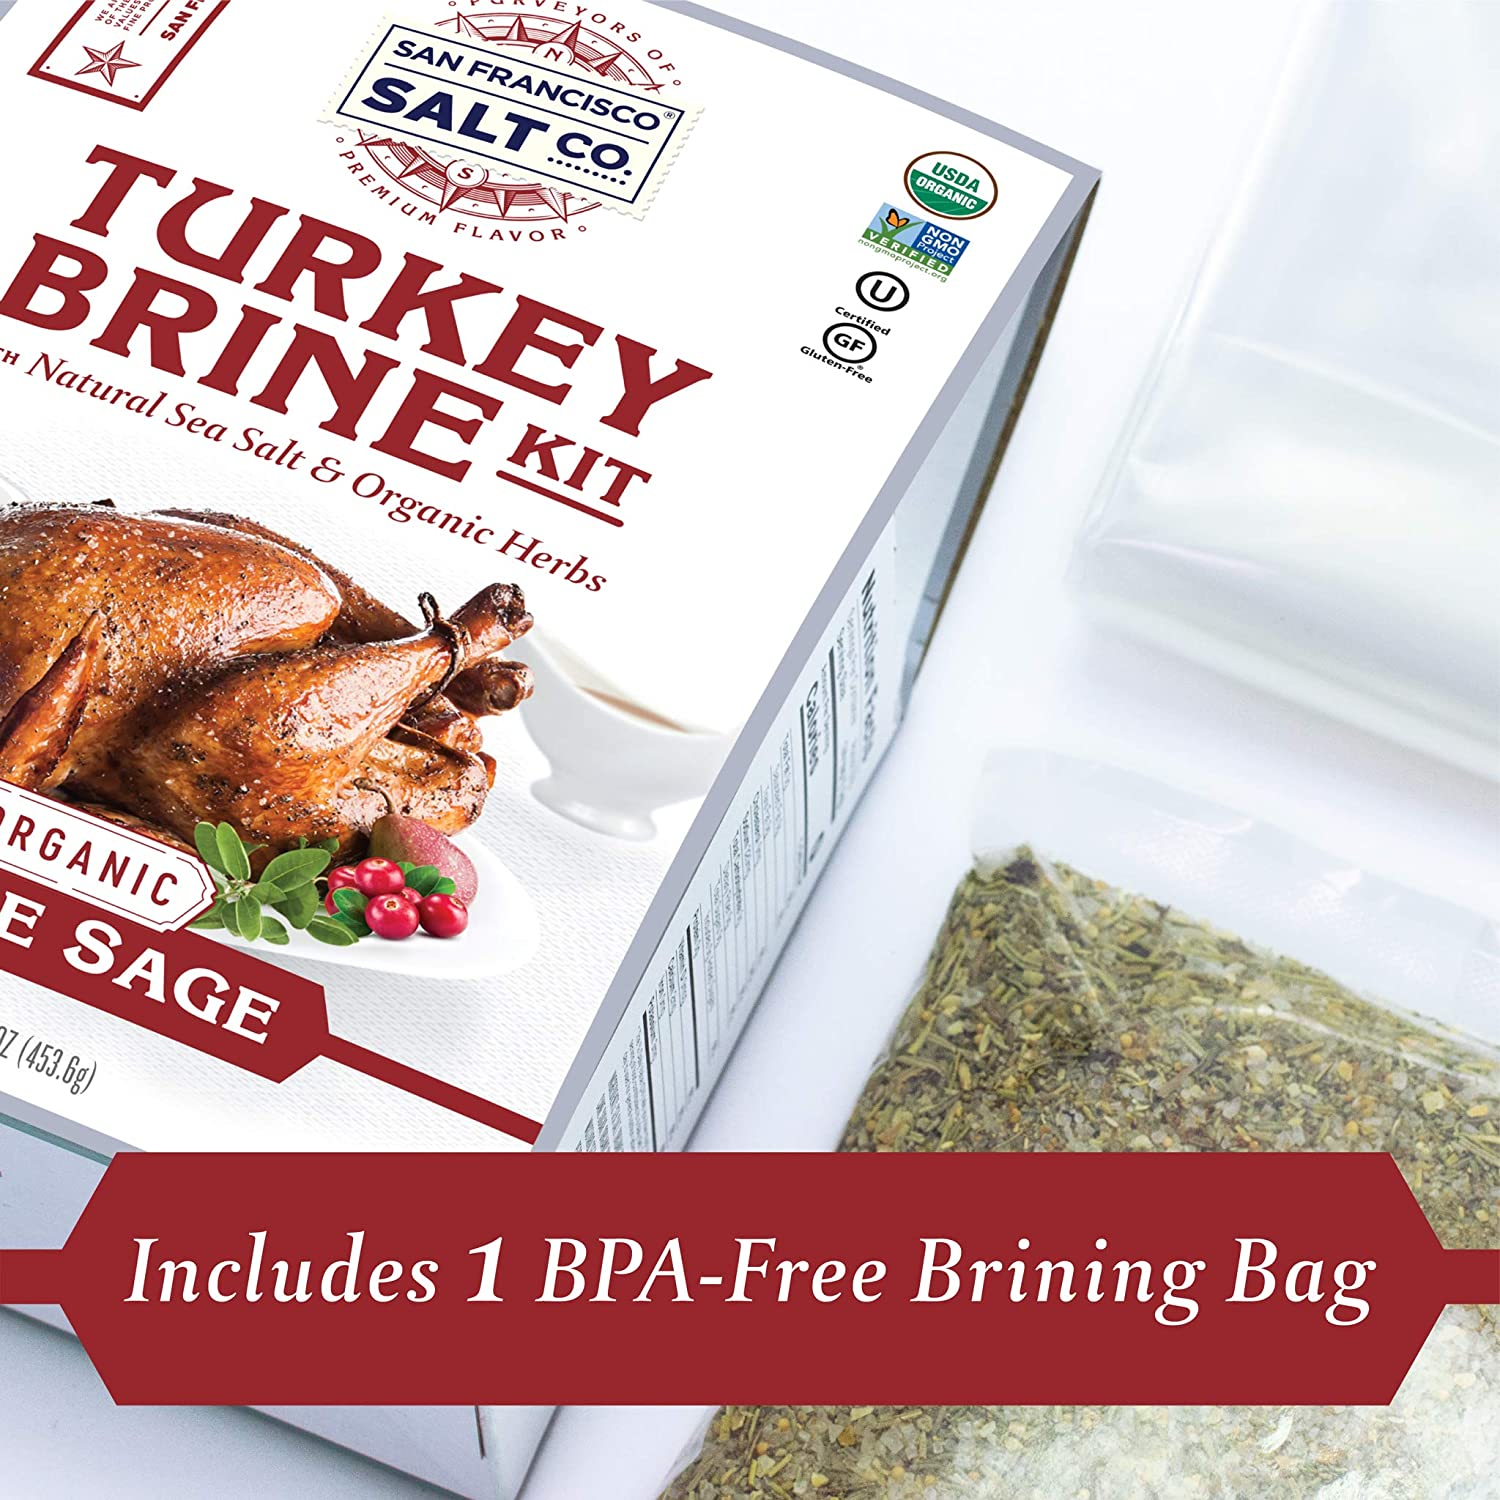 Organic Turkey Brining Kit - Apple Sage - San Francisco Salt Company